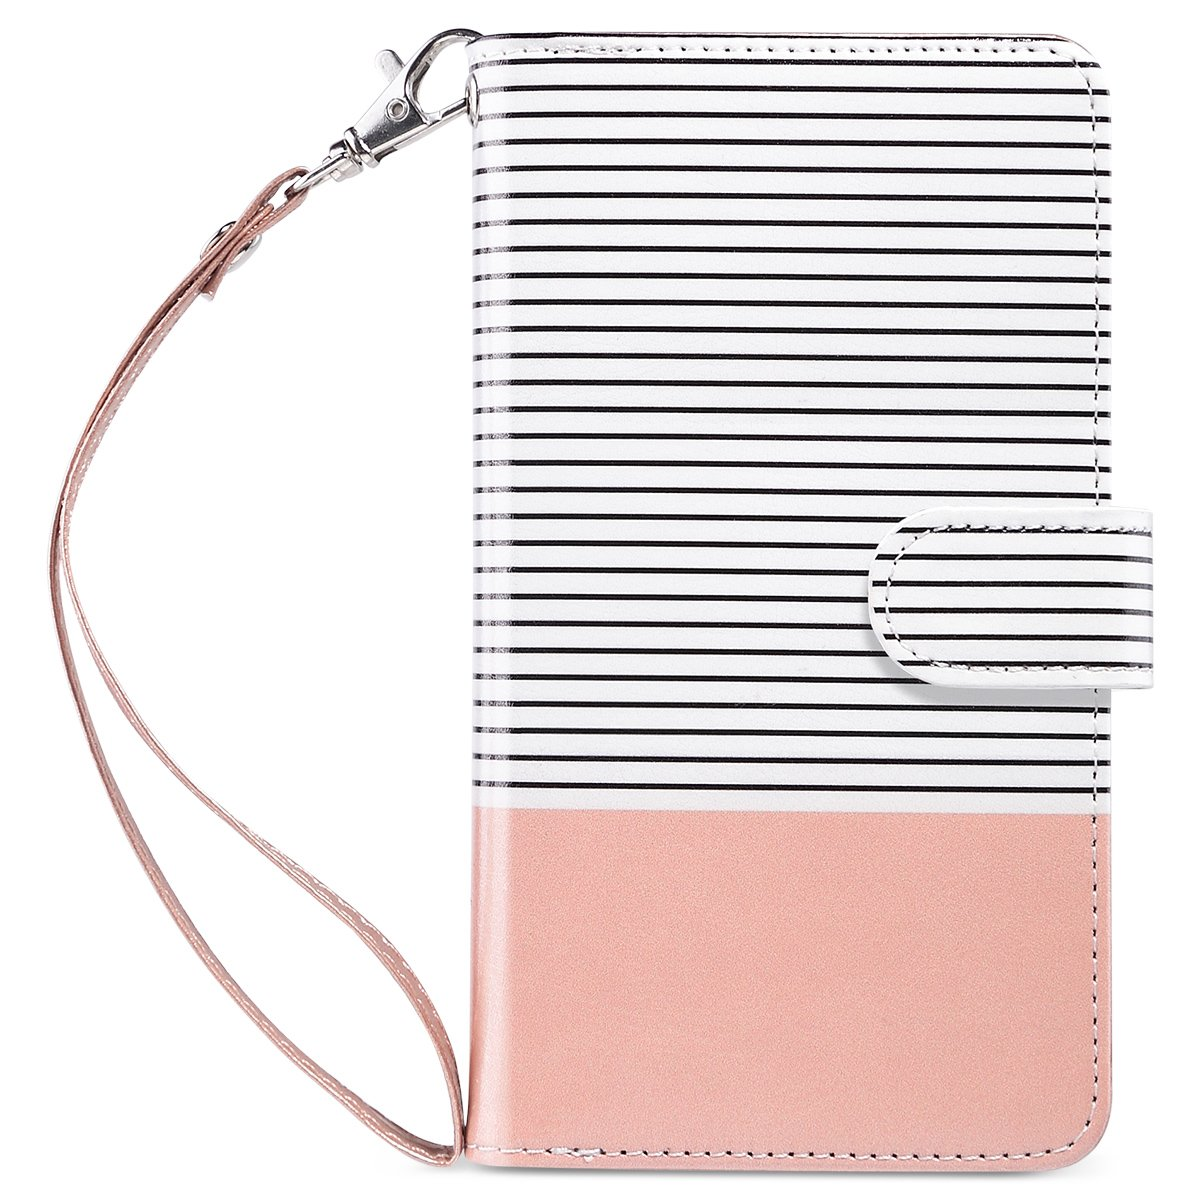 ULAK Flip Wallet Case for iPhone 8 Plus/iPhone 7 Plus, PU Leather Case with Multi Credit Card Holders Pockets Folio Magnetic Closure Cover for Apple iPhone 7 Plus/ 8 Plus, Rose Gold/Minimal Stripes by ULAK